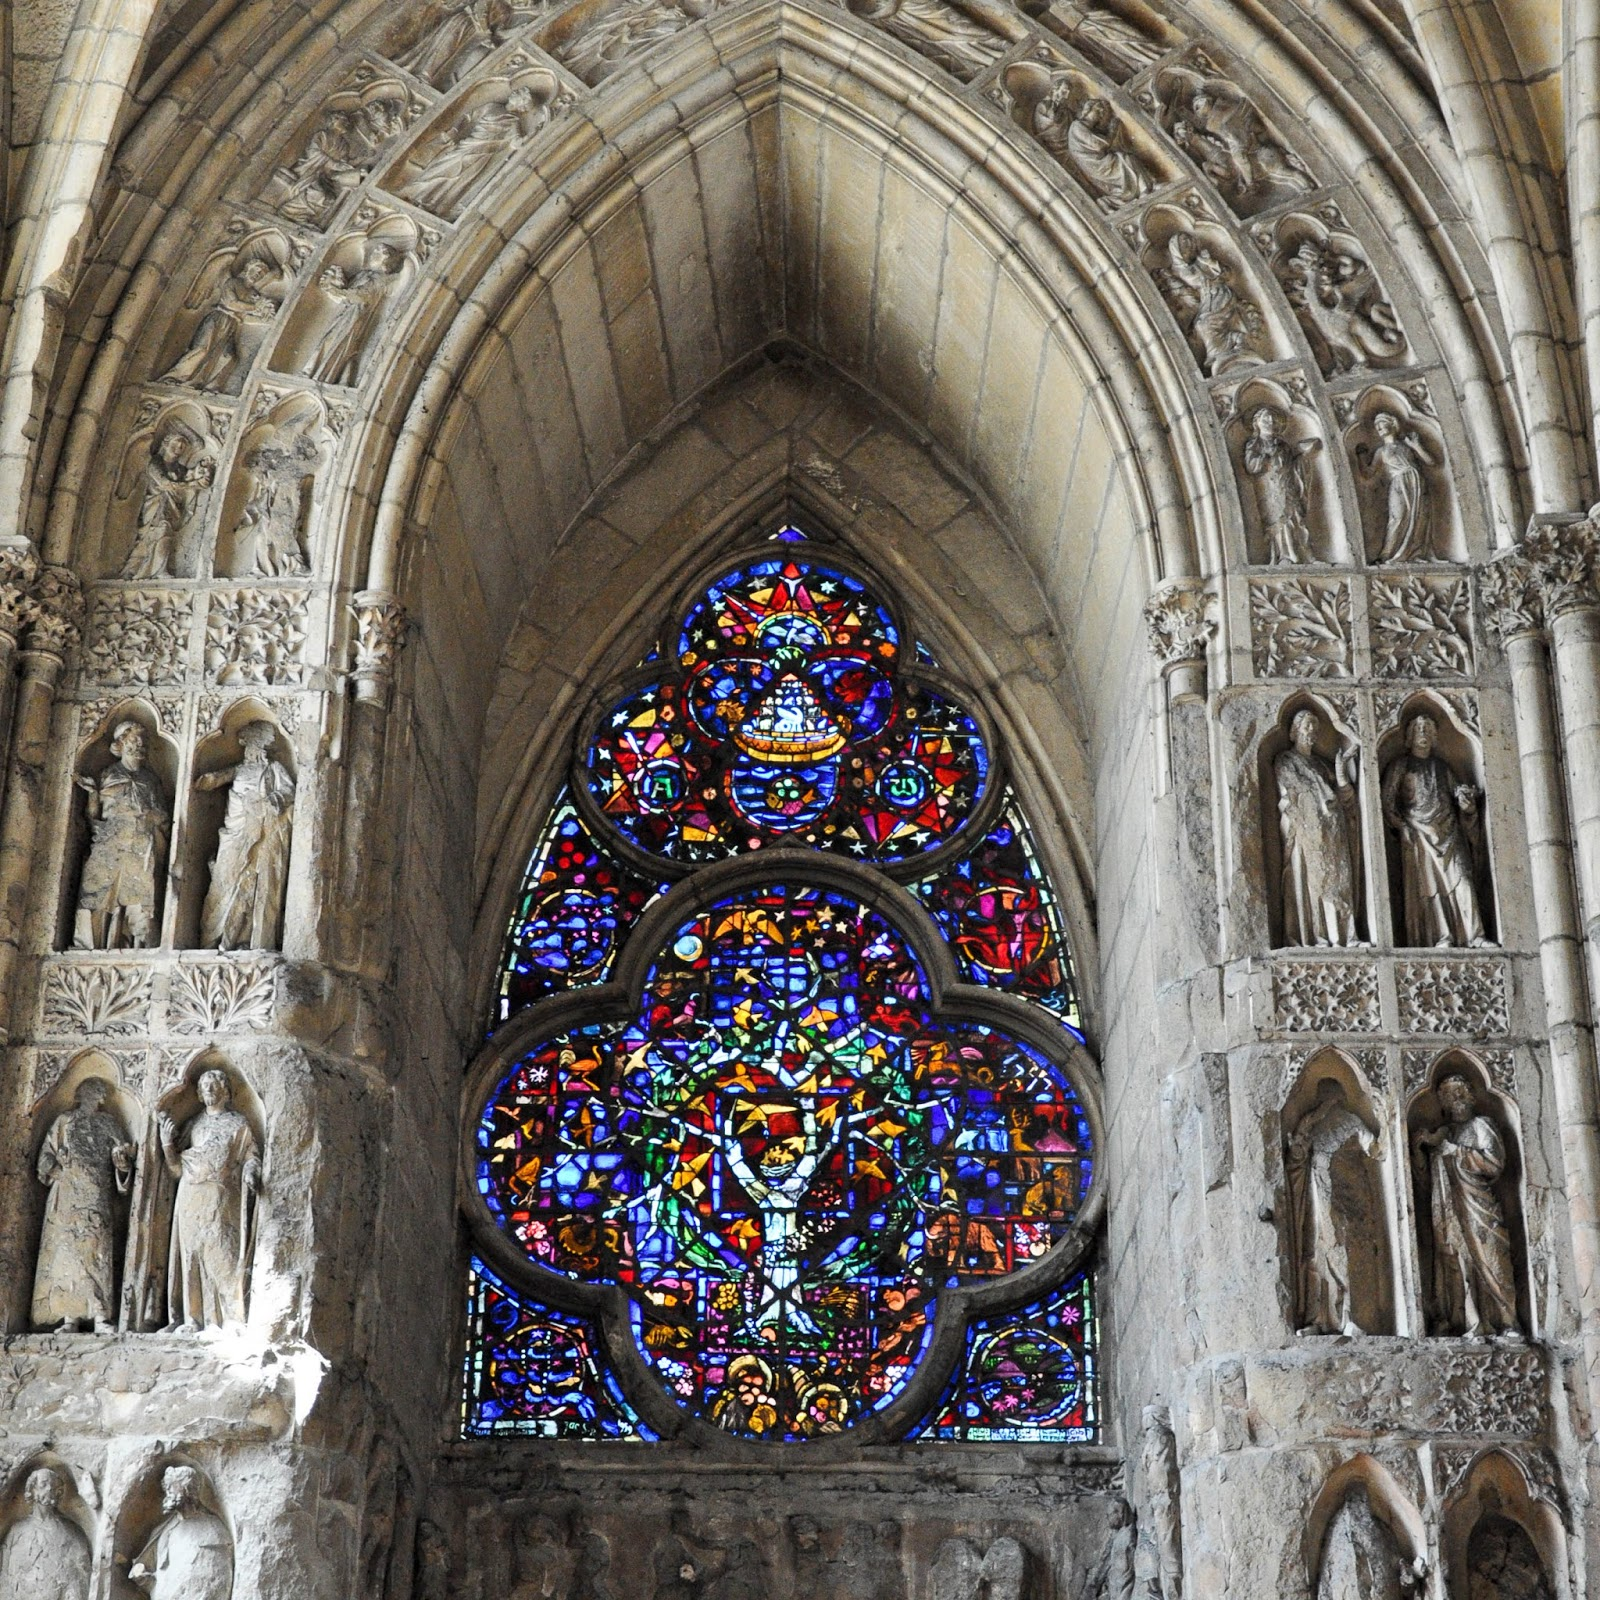 Close-up of stained glass window, Reims Cathedral, Reims, France